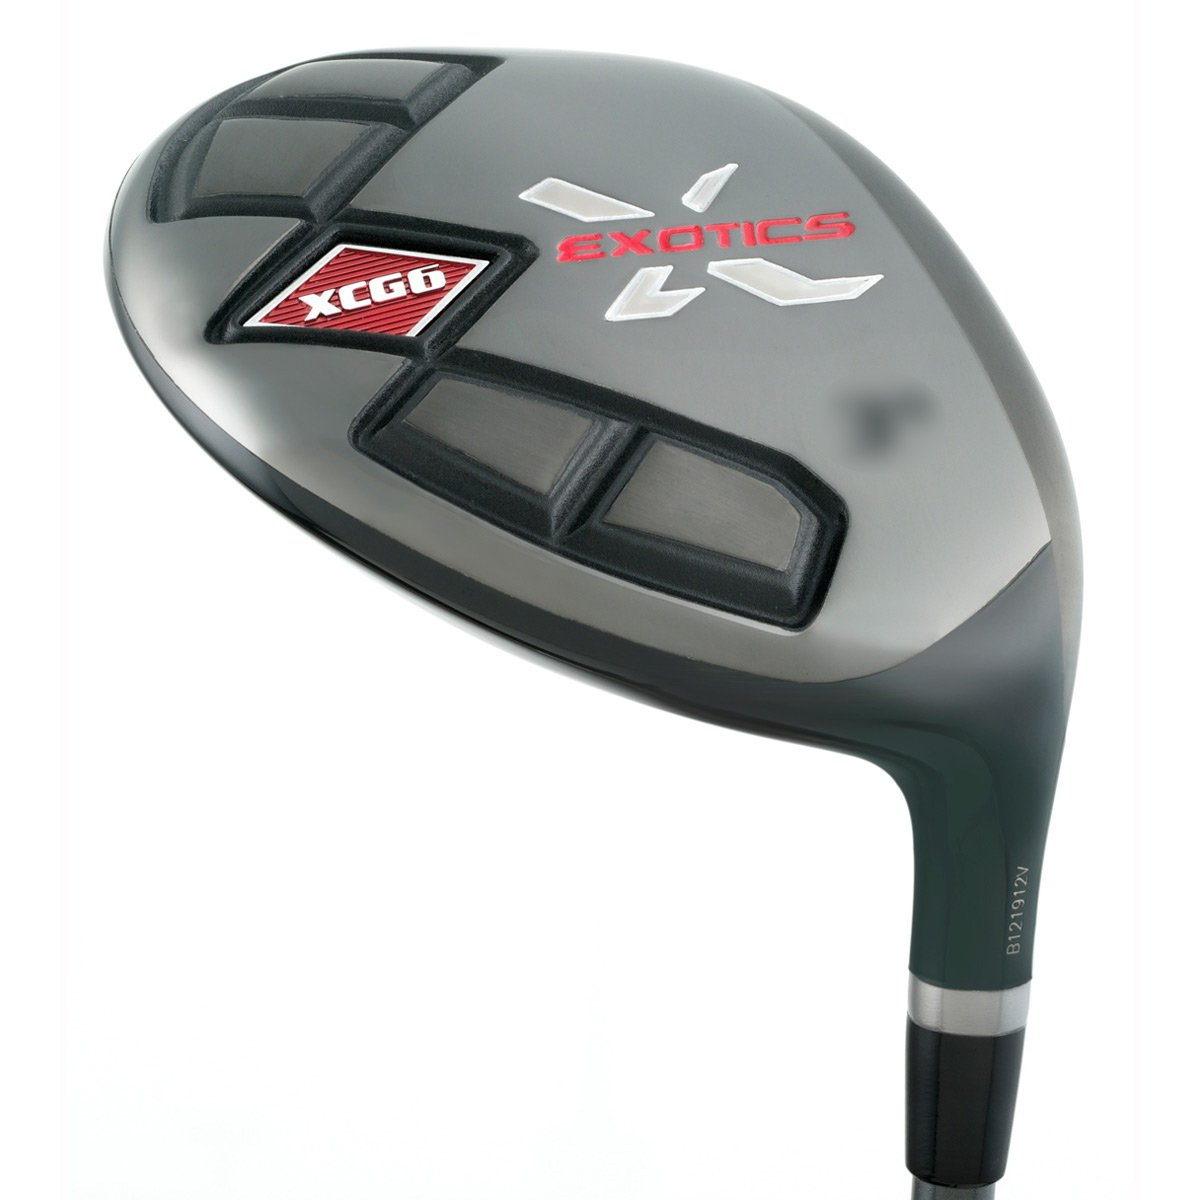 Tour borde Exotics XCG6 Golf madera Fairway, hombre, mano ...